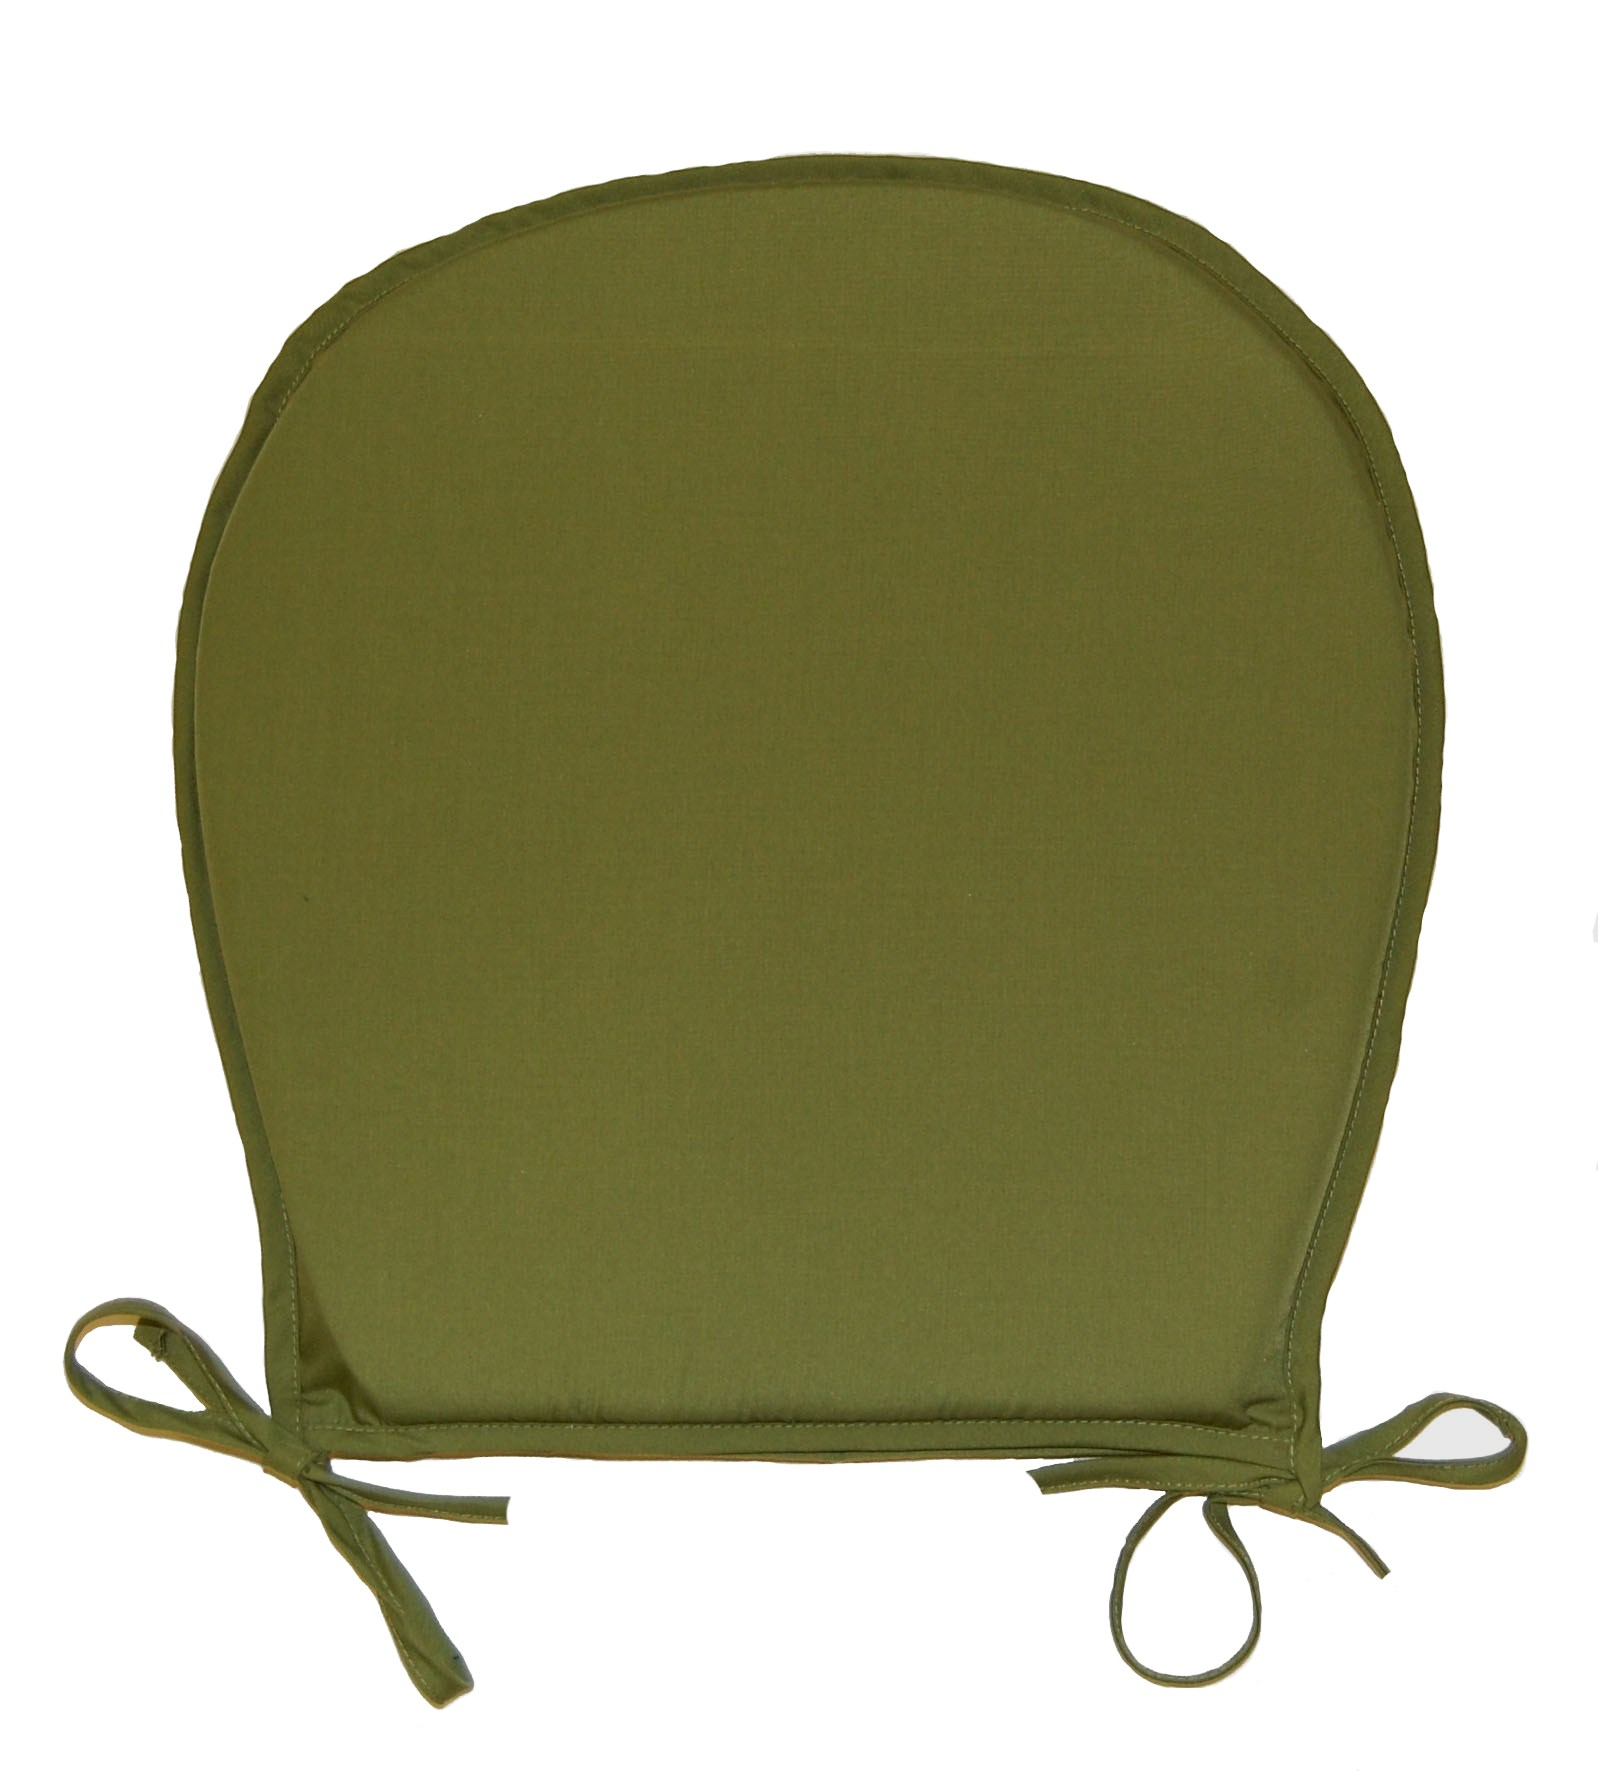 Chair Seat Pads Plain Round Kitchen Garden Furniture